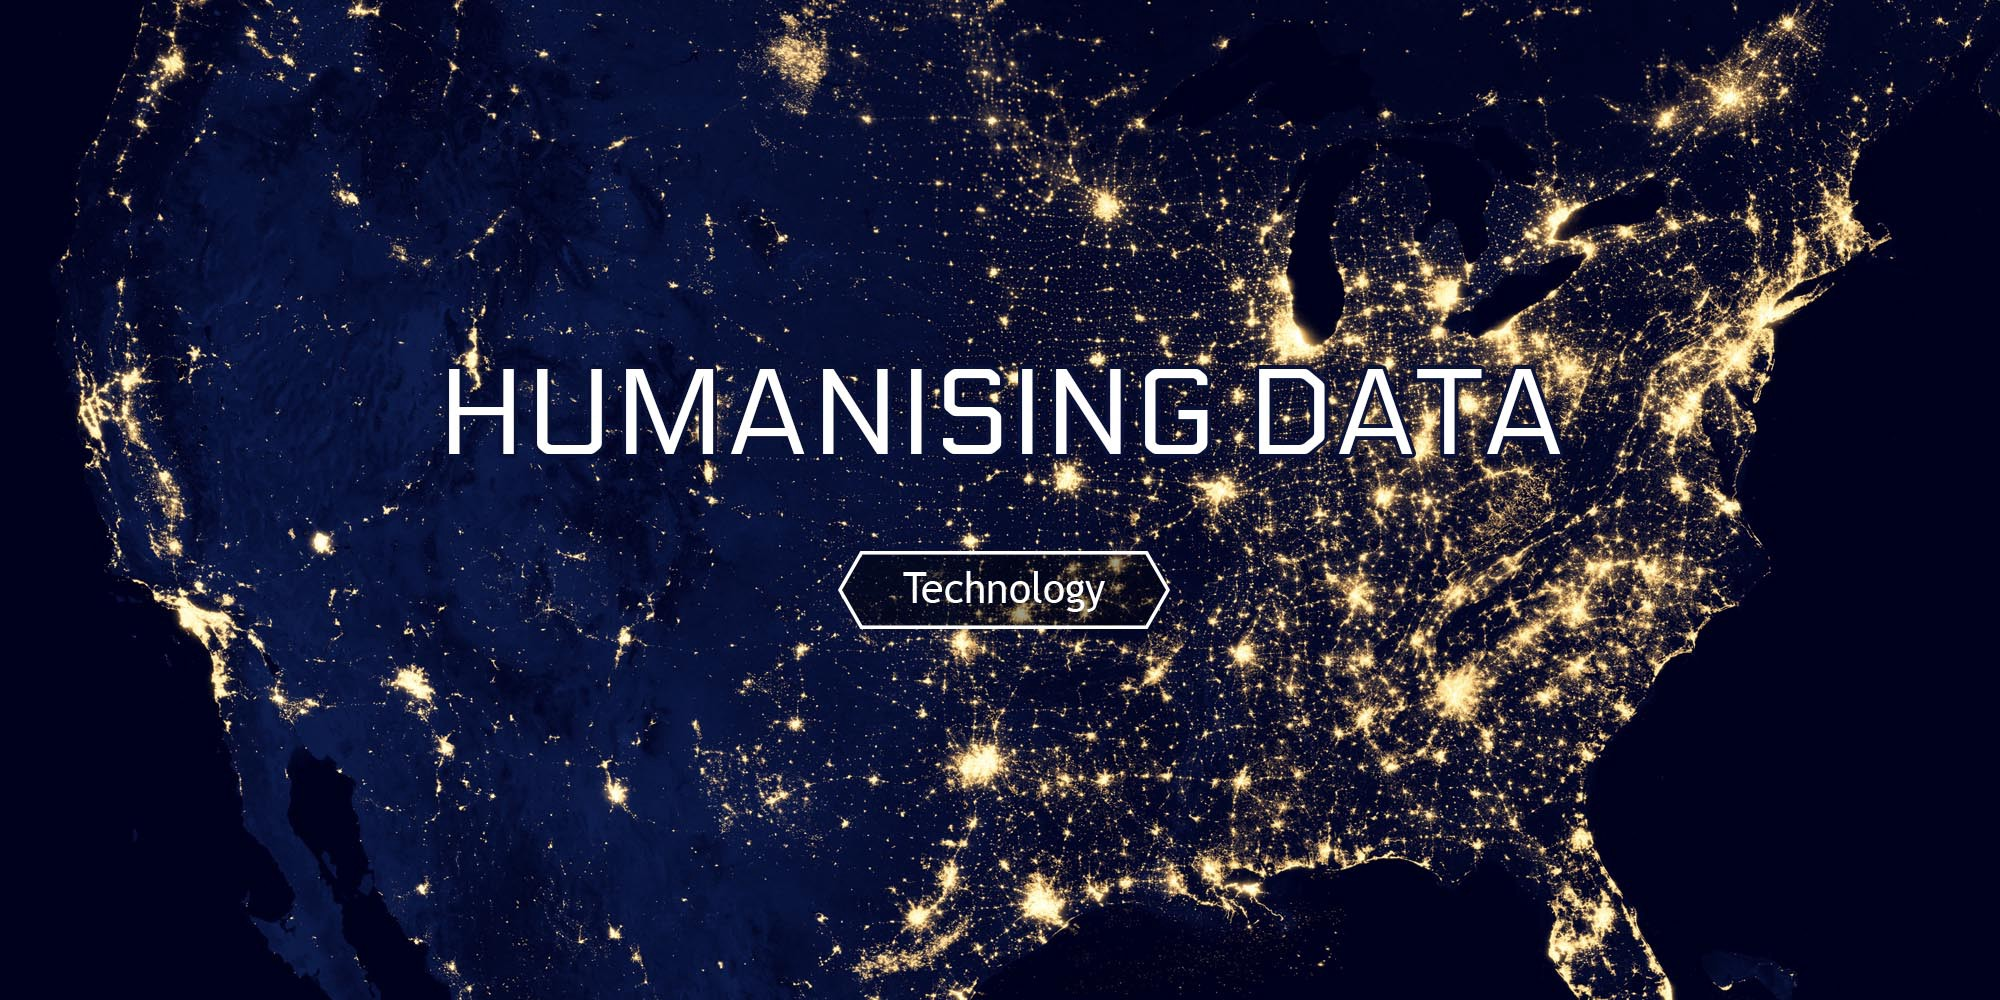 Humanising Data